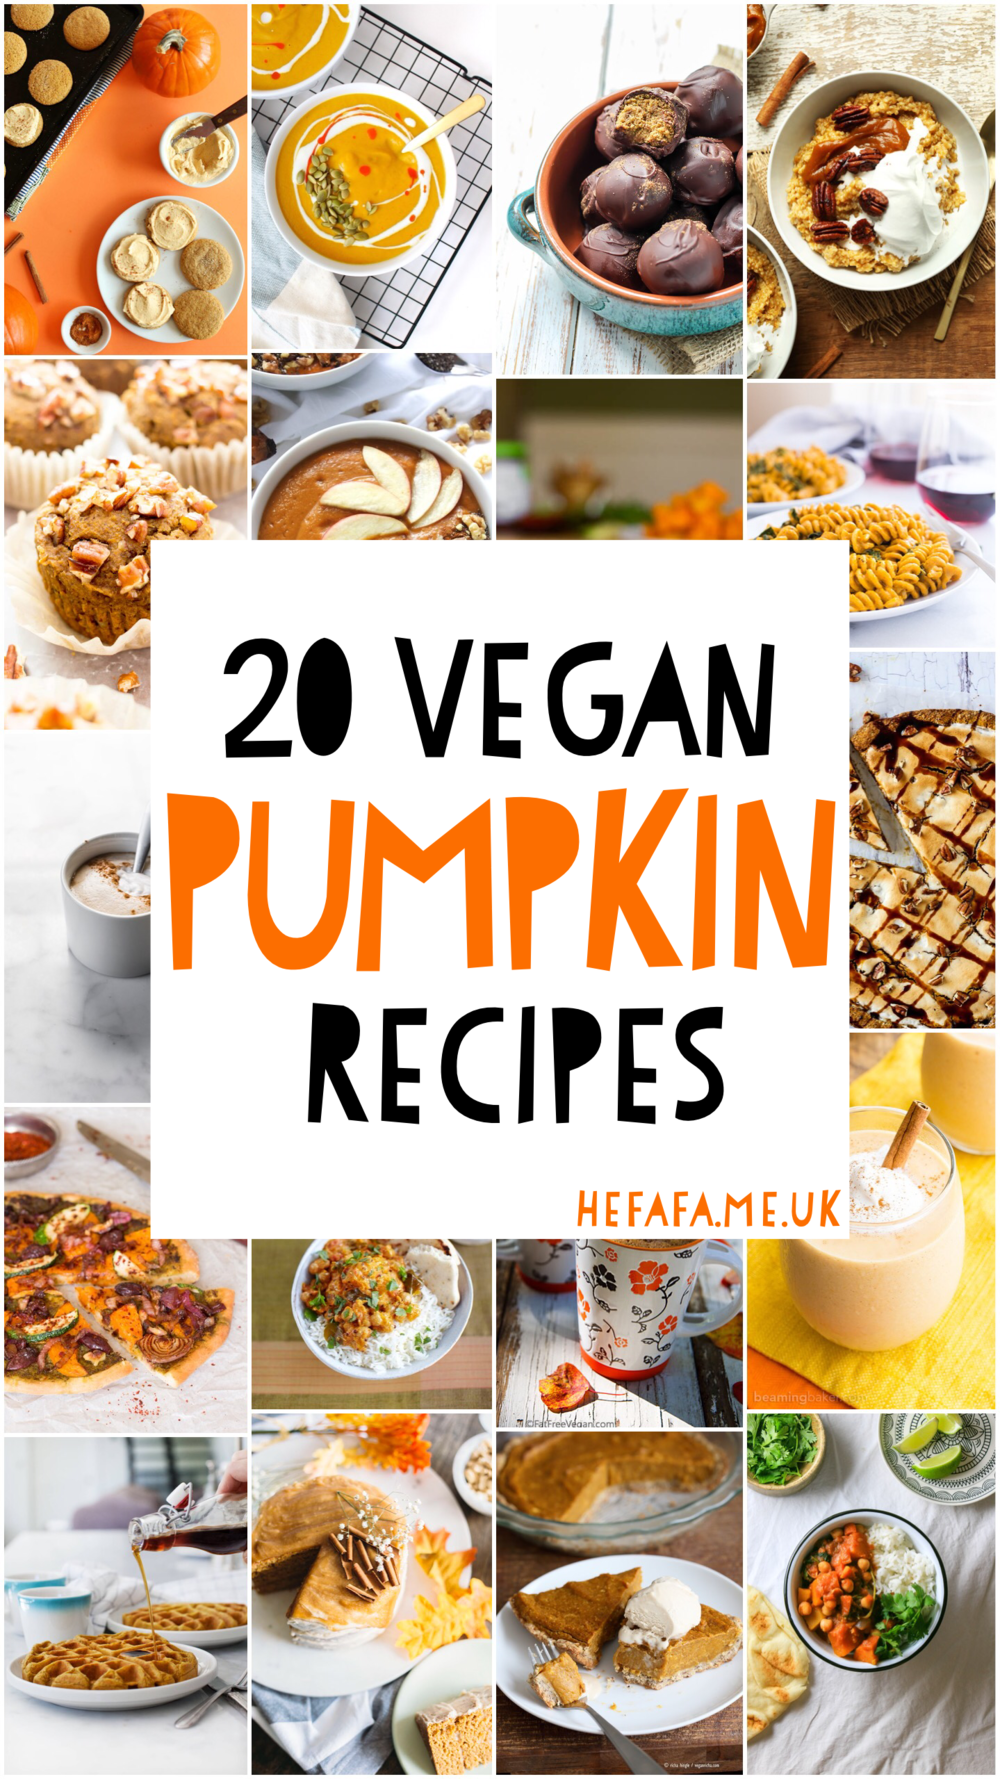 20 Vegan Pumpkin Recipes - Heather Rowland on hefafa.me.uk //Published 28 September 2017